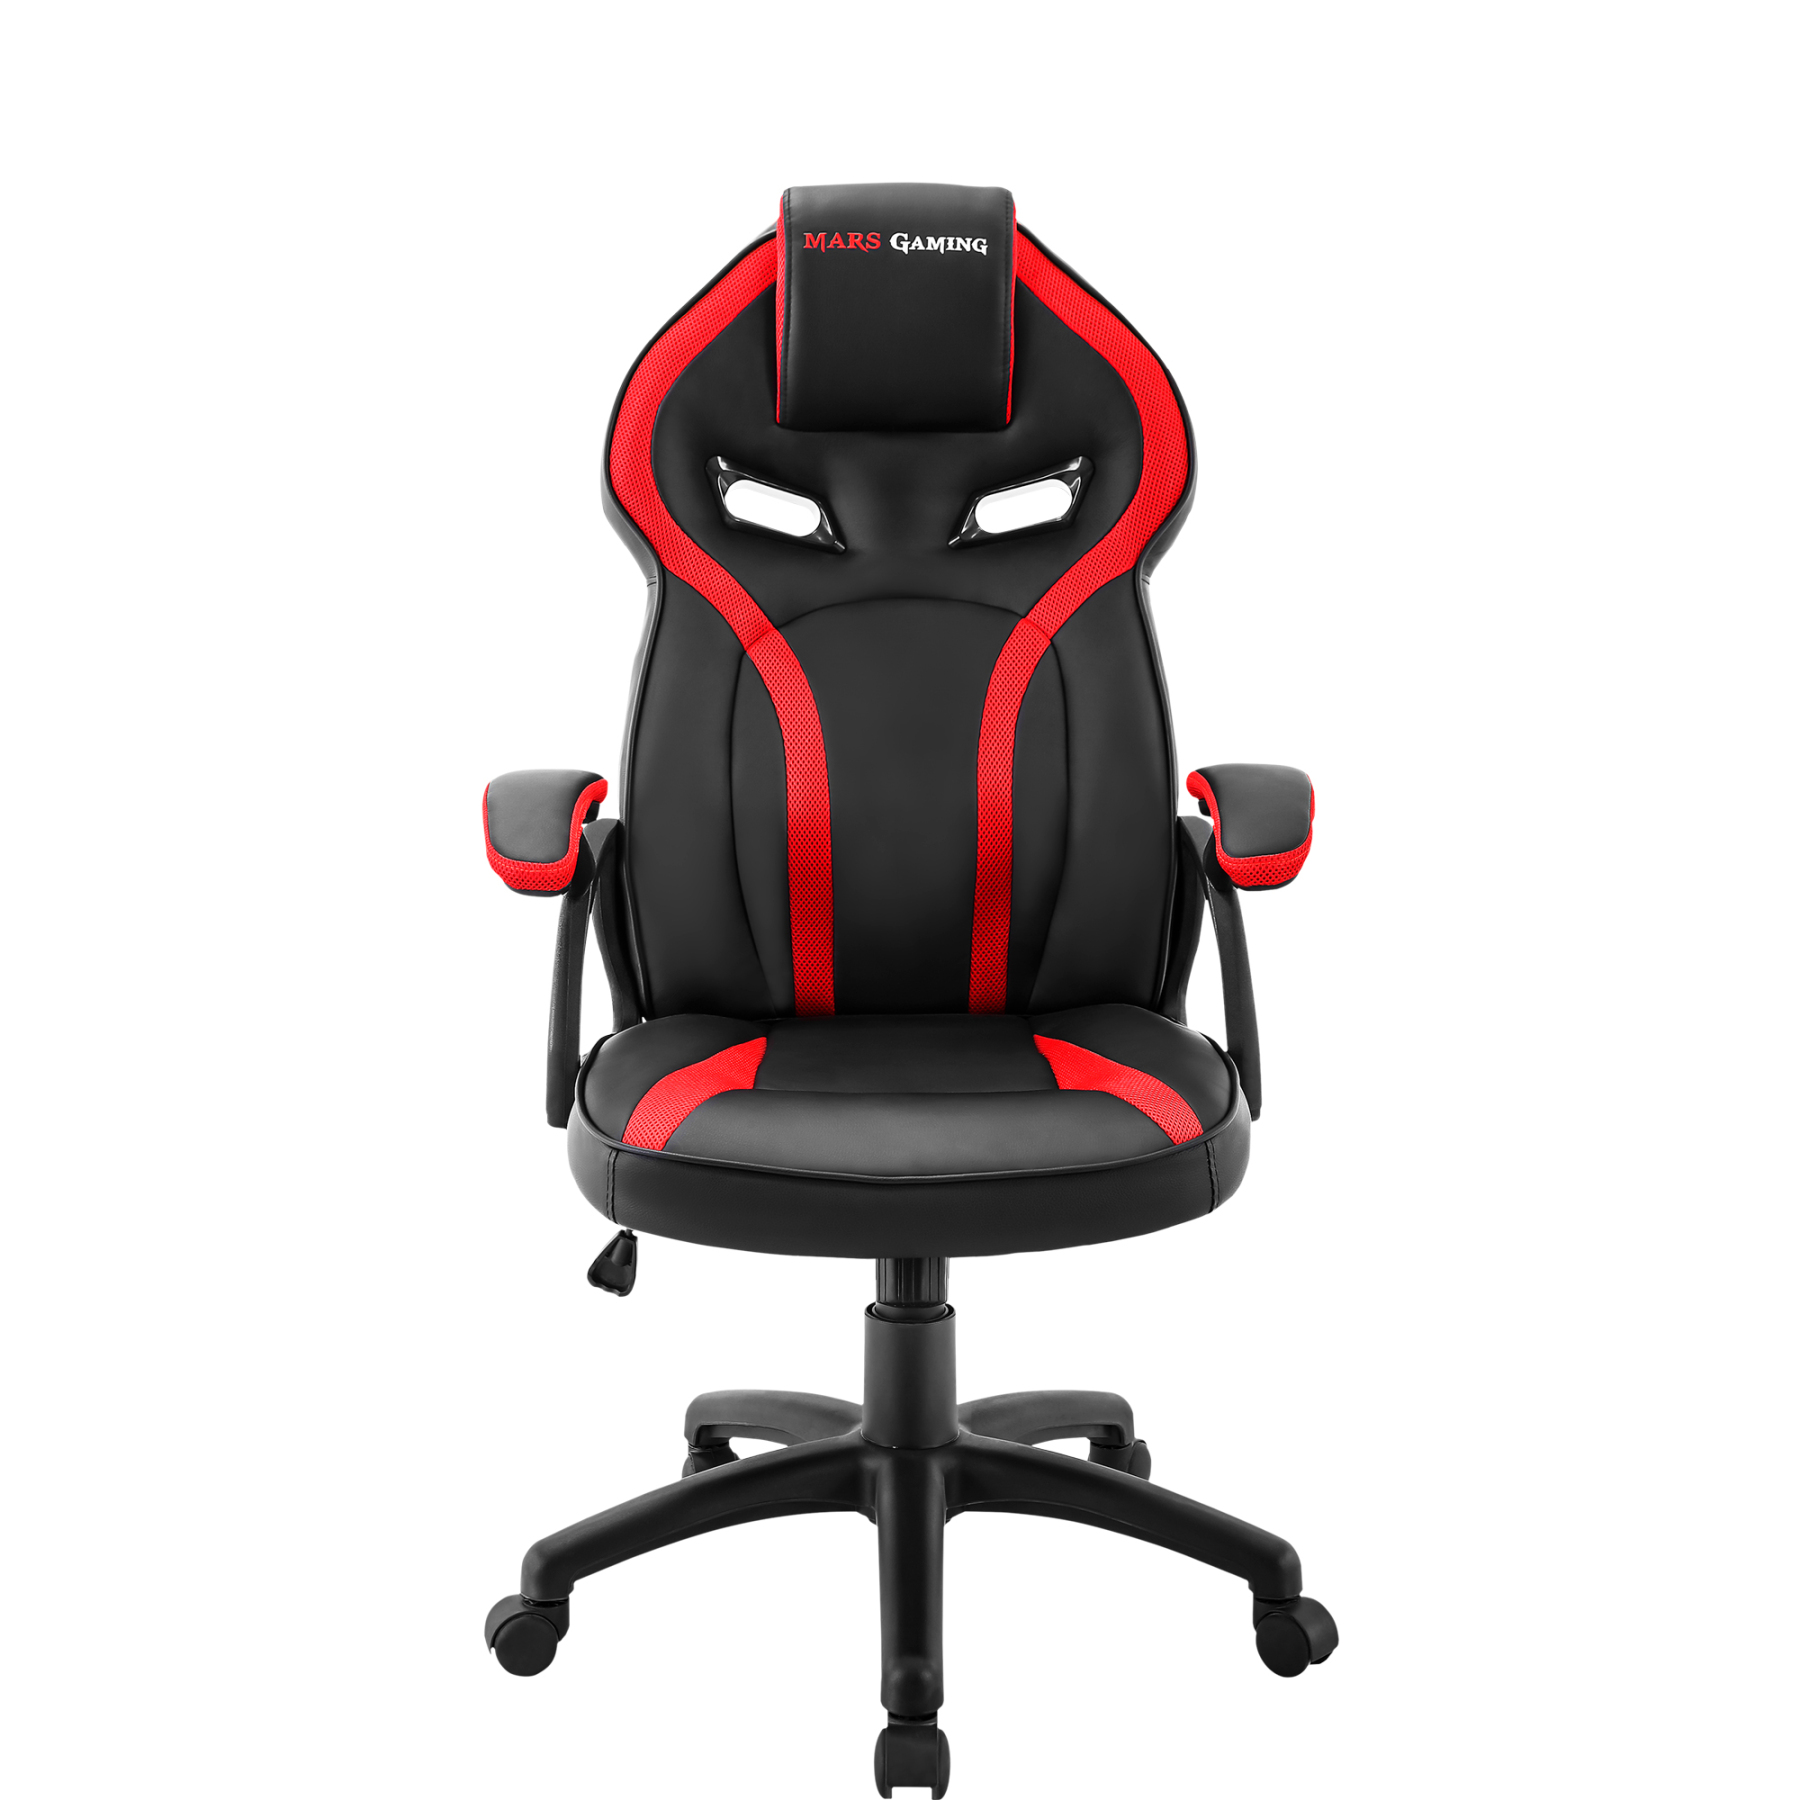 Mars Gaming MGC118-gaming Chair, With Tilt And High Altitude Dimmable. VARIOUS COLORS